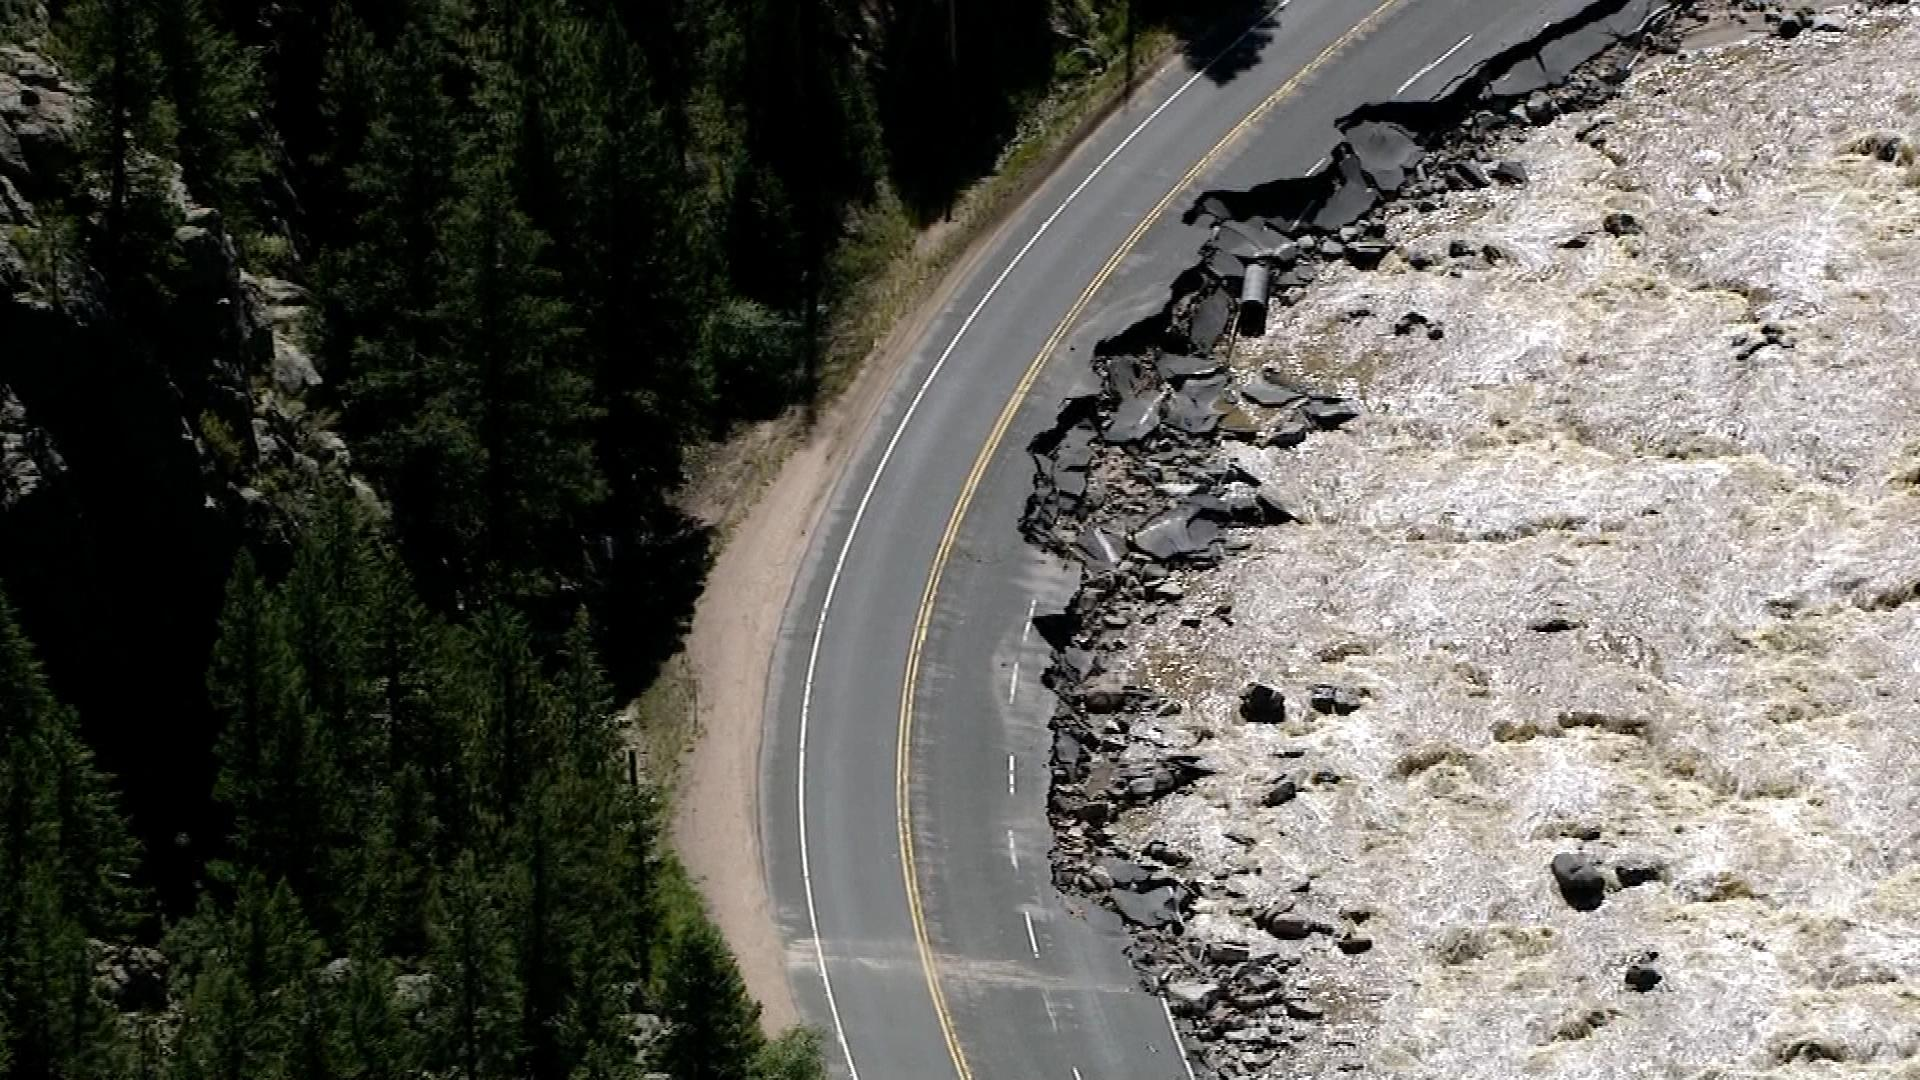 Big Thompson Canyon after the flooding in September, 2103  (credit: CBS)